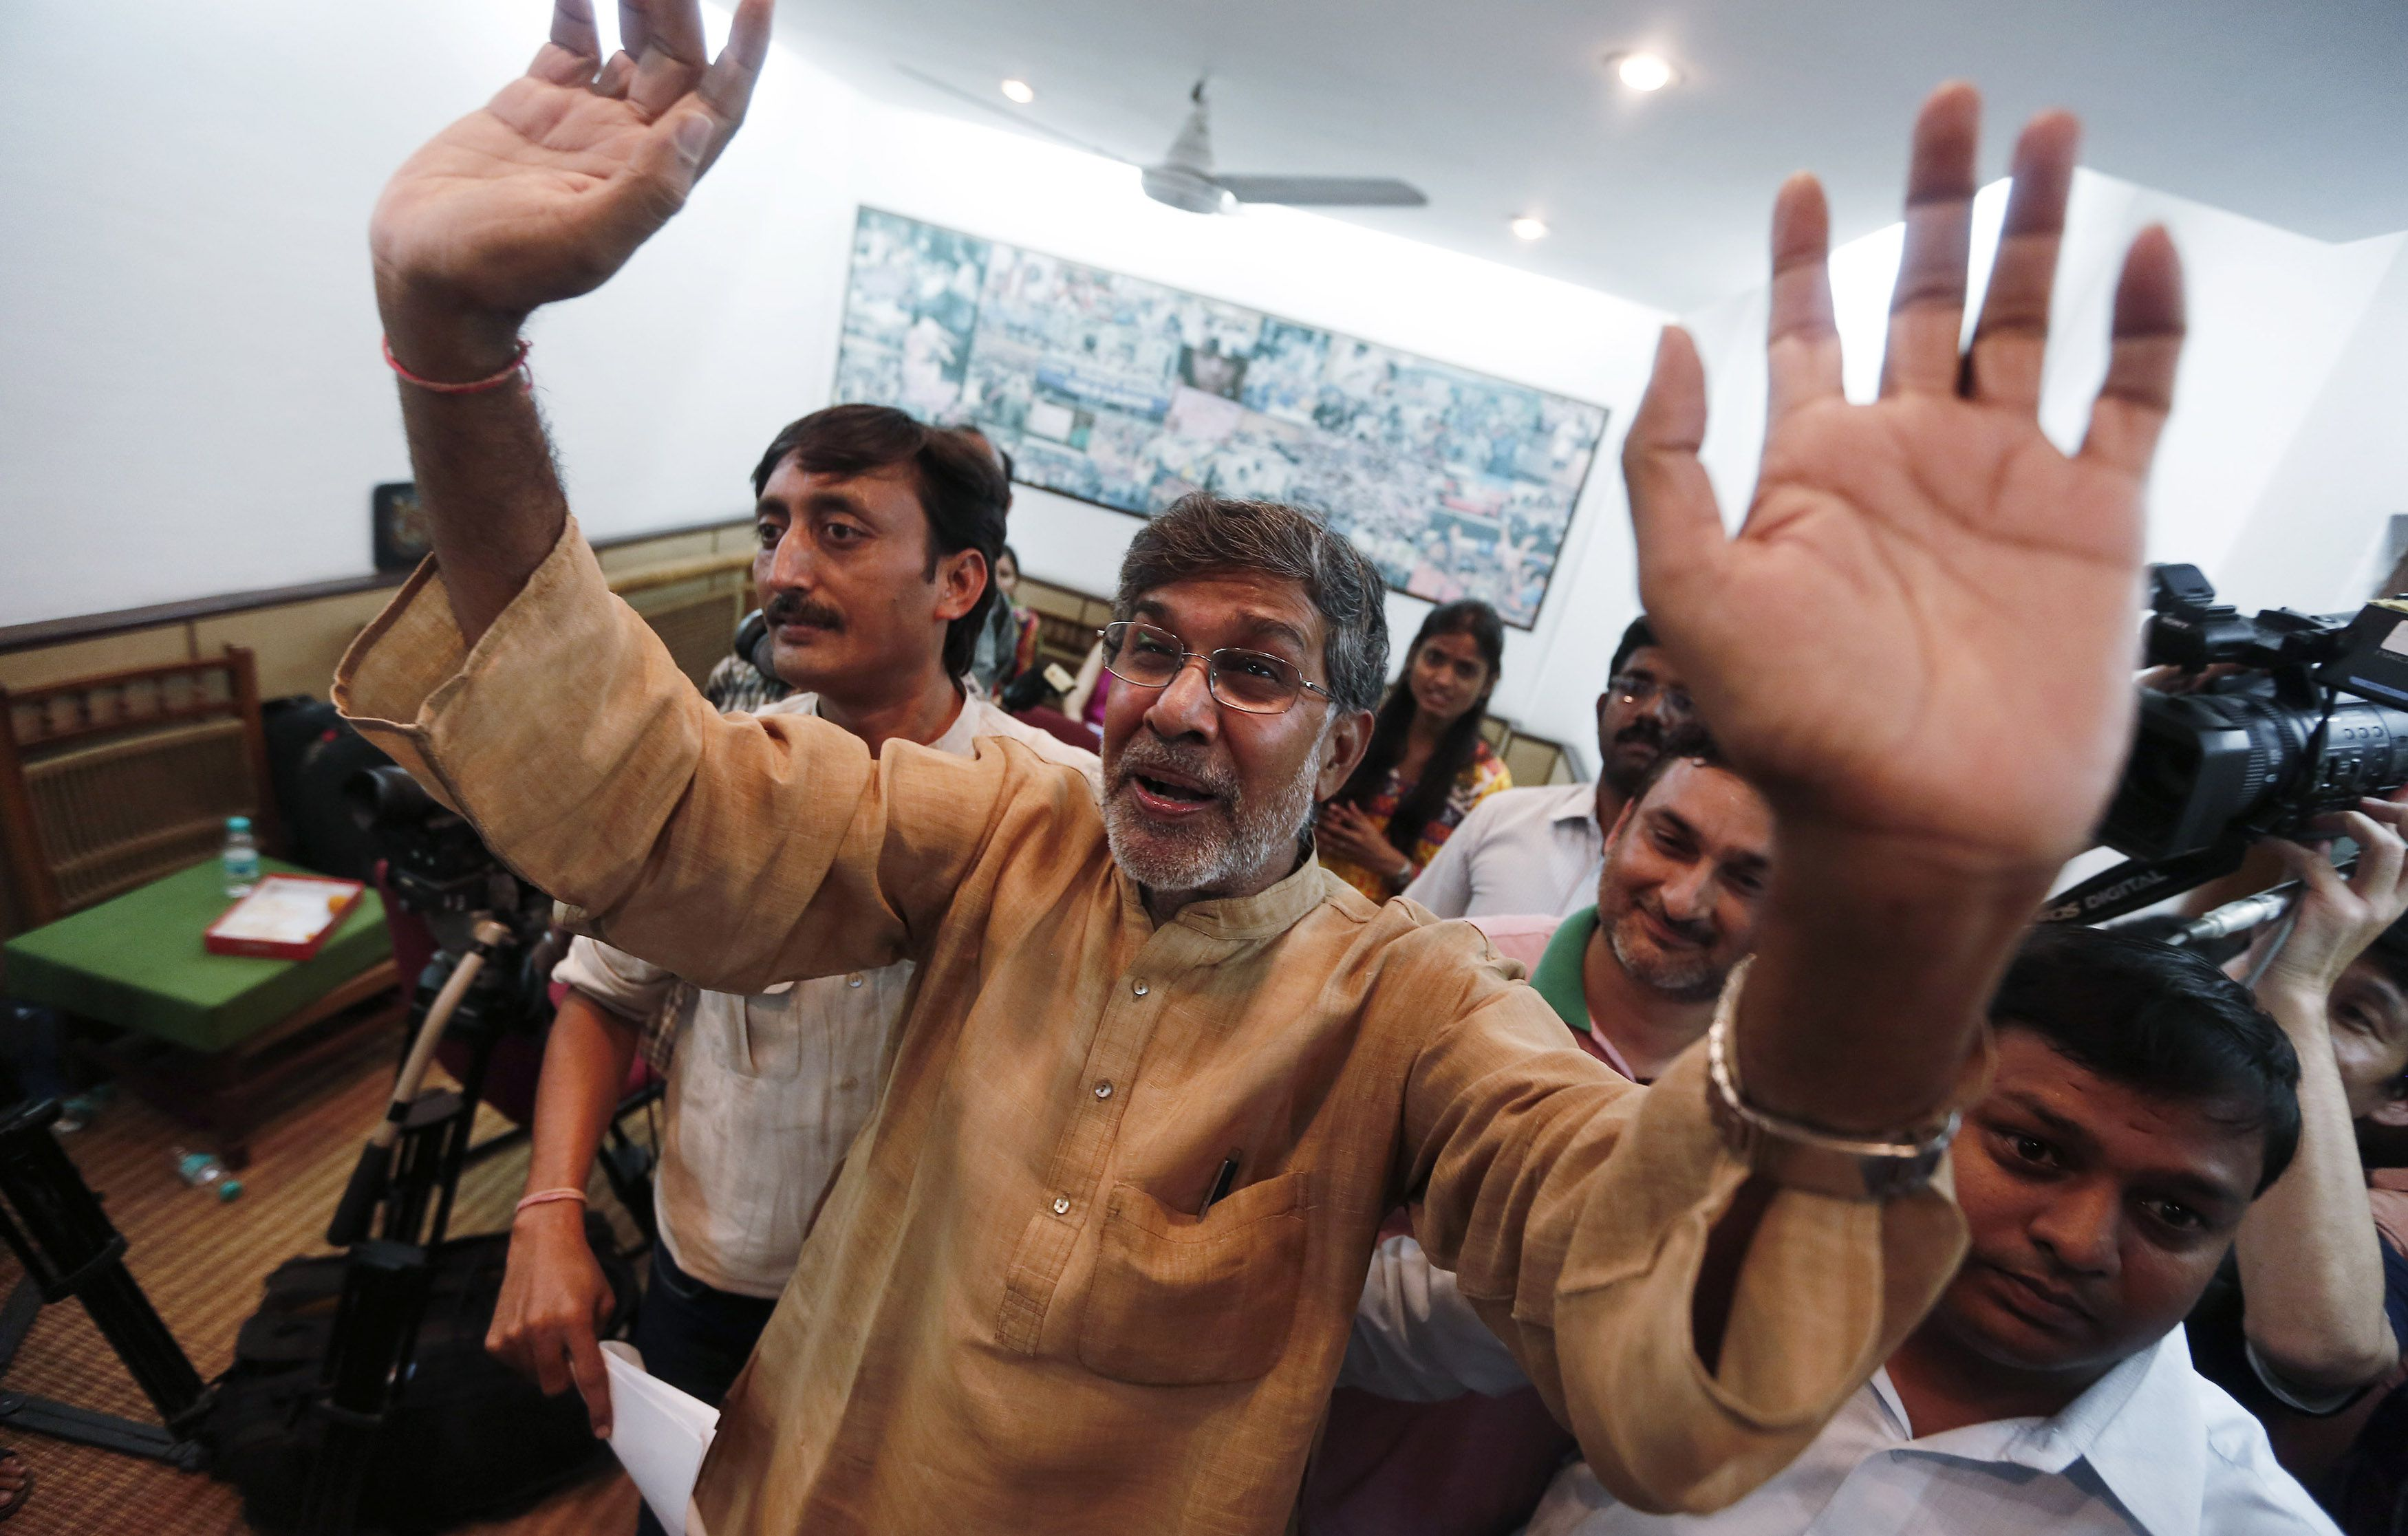 """Indian children's right activist Kailash Satyarthi waves to the media at his office in New Delhi October 10, 2014. Pakistani teenager Malala Yousafzai, who was shot in the head by the Taliban in 2012 for advocating girls' right to education, and Satyarthi won the 2014 Nobel Peace Prize on Friday. Satyarthi, 60, and Yousafzai were picked for their struggle against the oppression of children and young people, and for the right of all children to education, the Norwegian Nobel Committee said. Satyarthi dedicated the Nobel Peace Prize that he shared on Friday to children in slavery, pledging to """"join hands"""" with fellow laureate Yousafzai of Pakistan as their two countries fought over the territory of Kashmir. REUTERS/Adnan Abidi (INDIA - Tags: SOCIETY TPX IMAGES OF THE DAY) - RTR49P2B"""